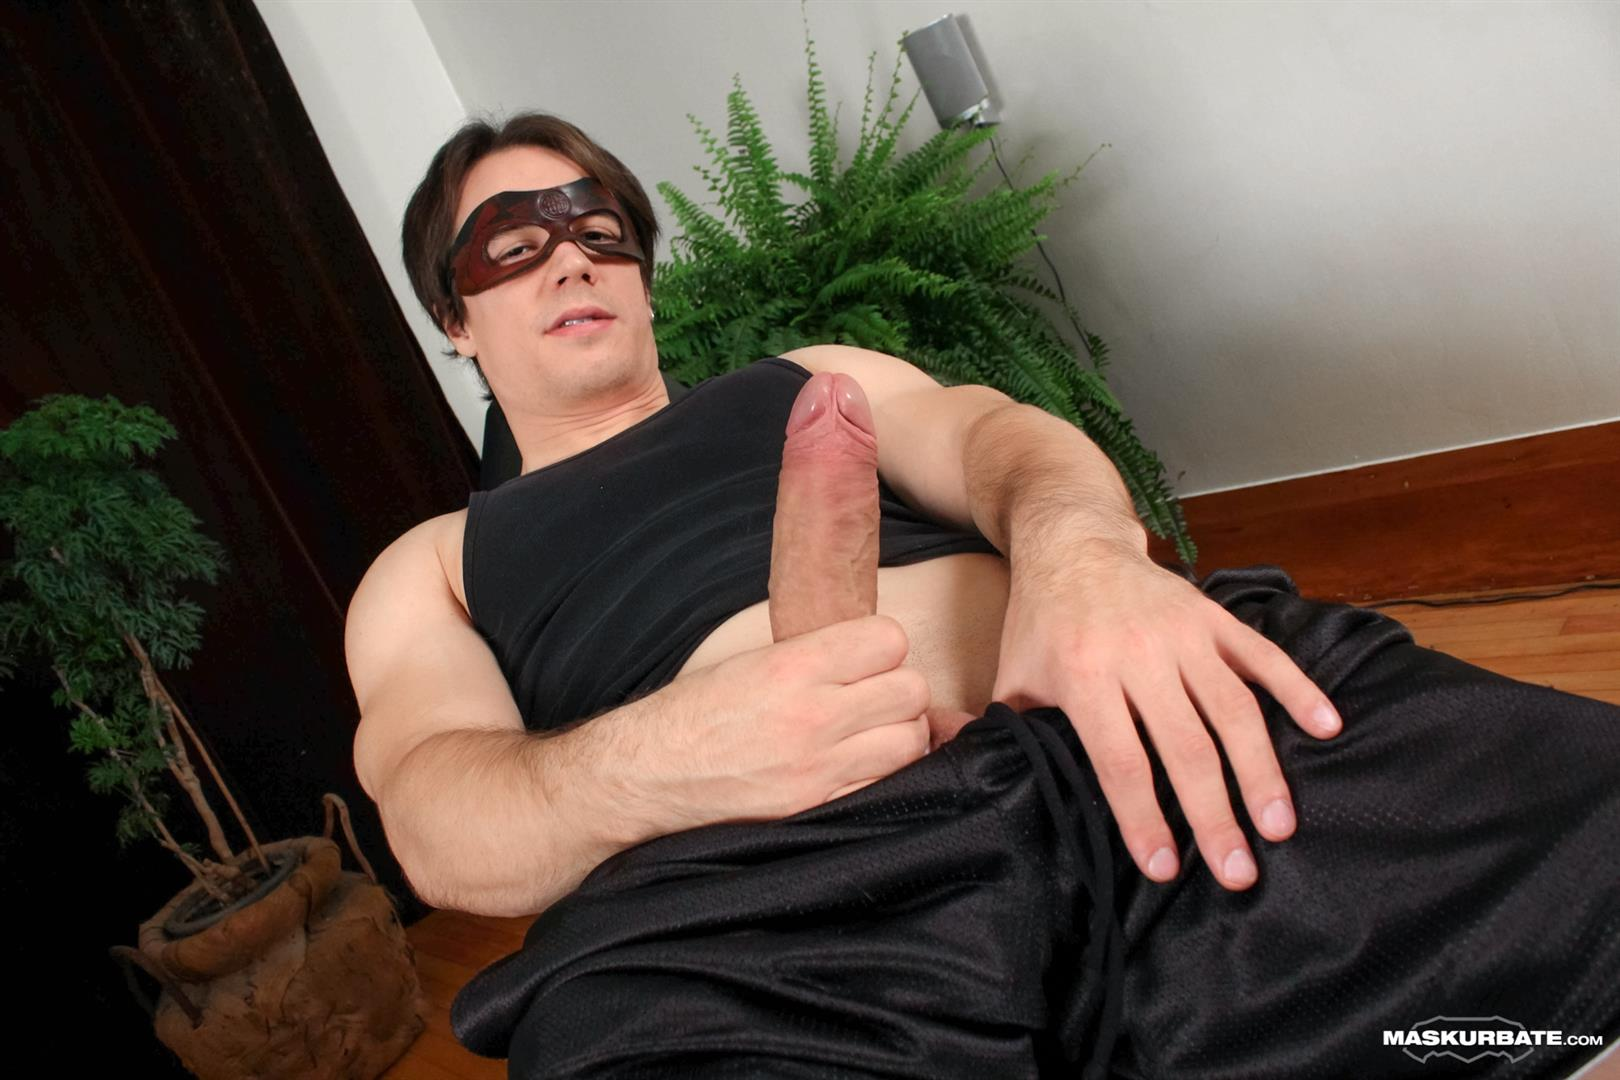 Maskurbate-Ricky-Big-Uncut-Cock-Jerk-Off-Anonymous-Amateur-Gay-Porn-03 Maskurbate Hunk Ricky Jerking Off His Huge Uncut Cock